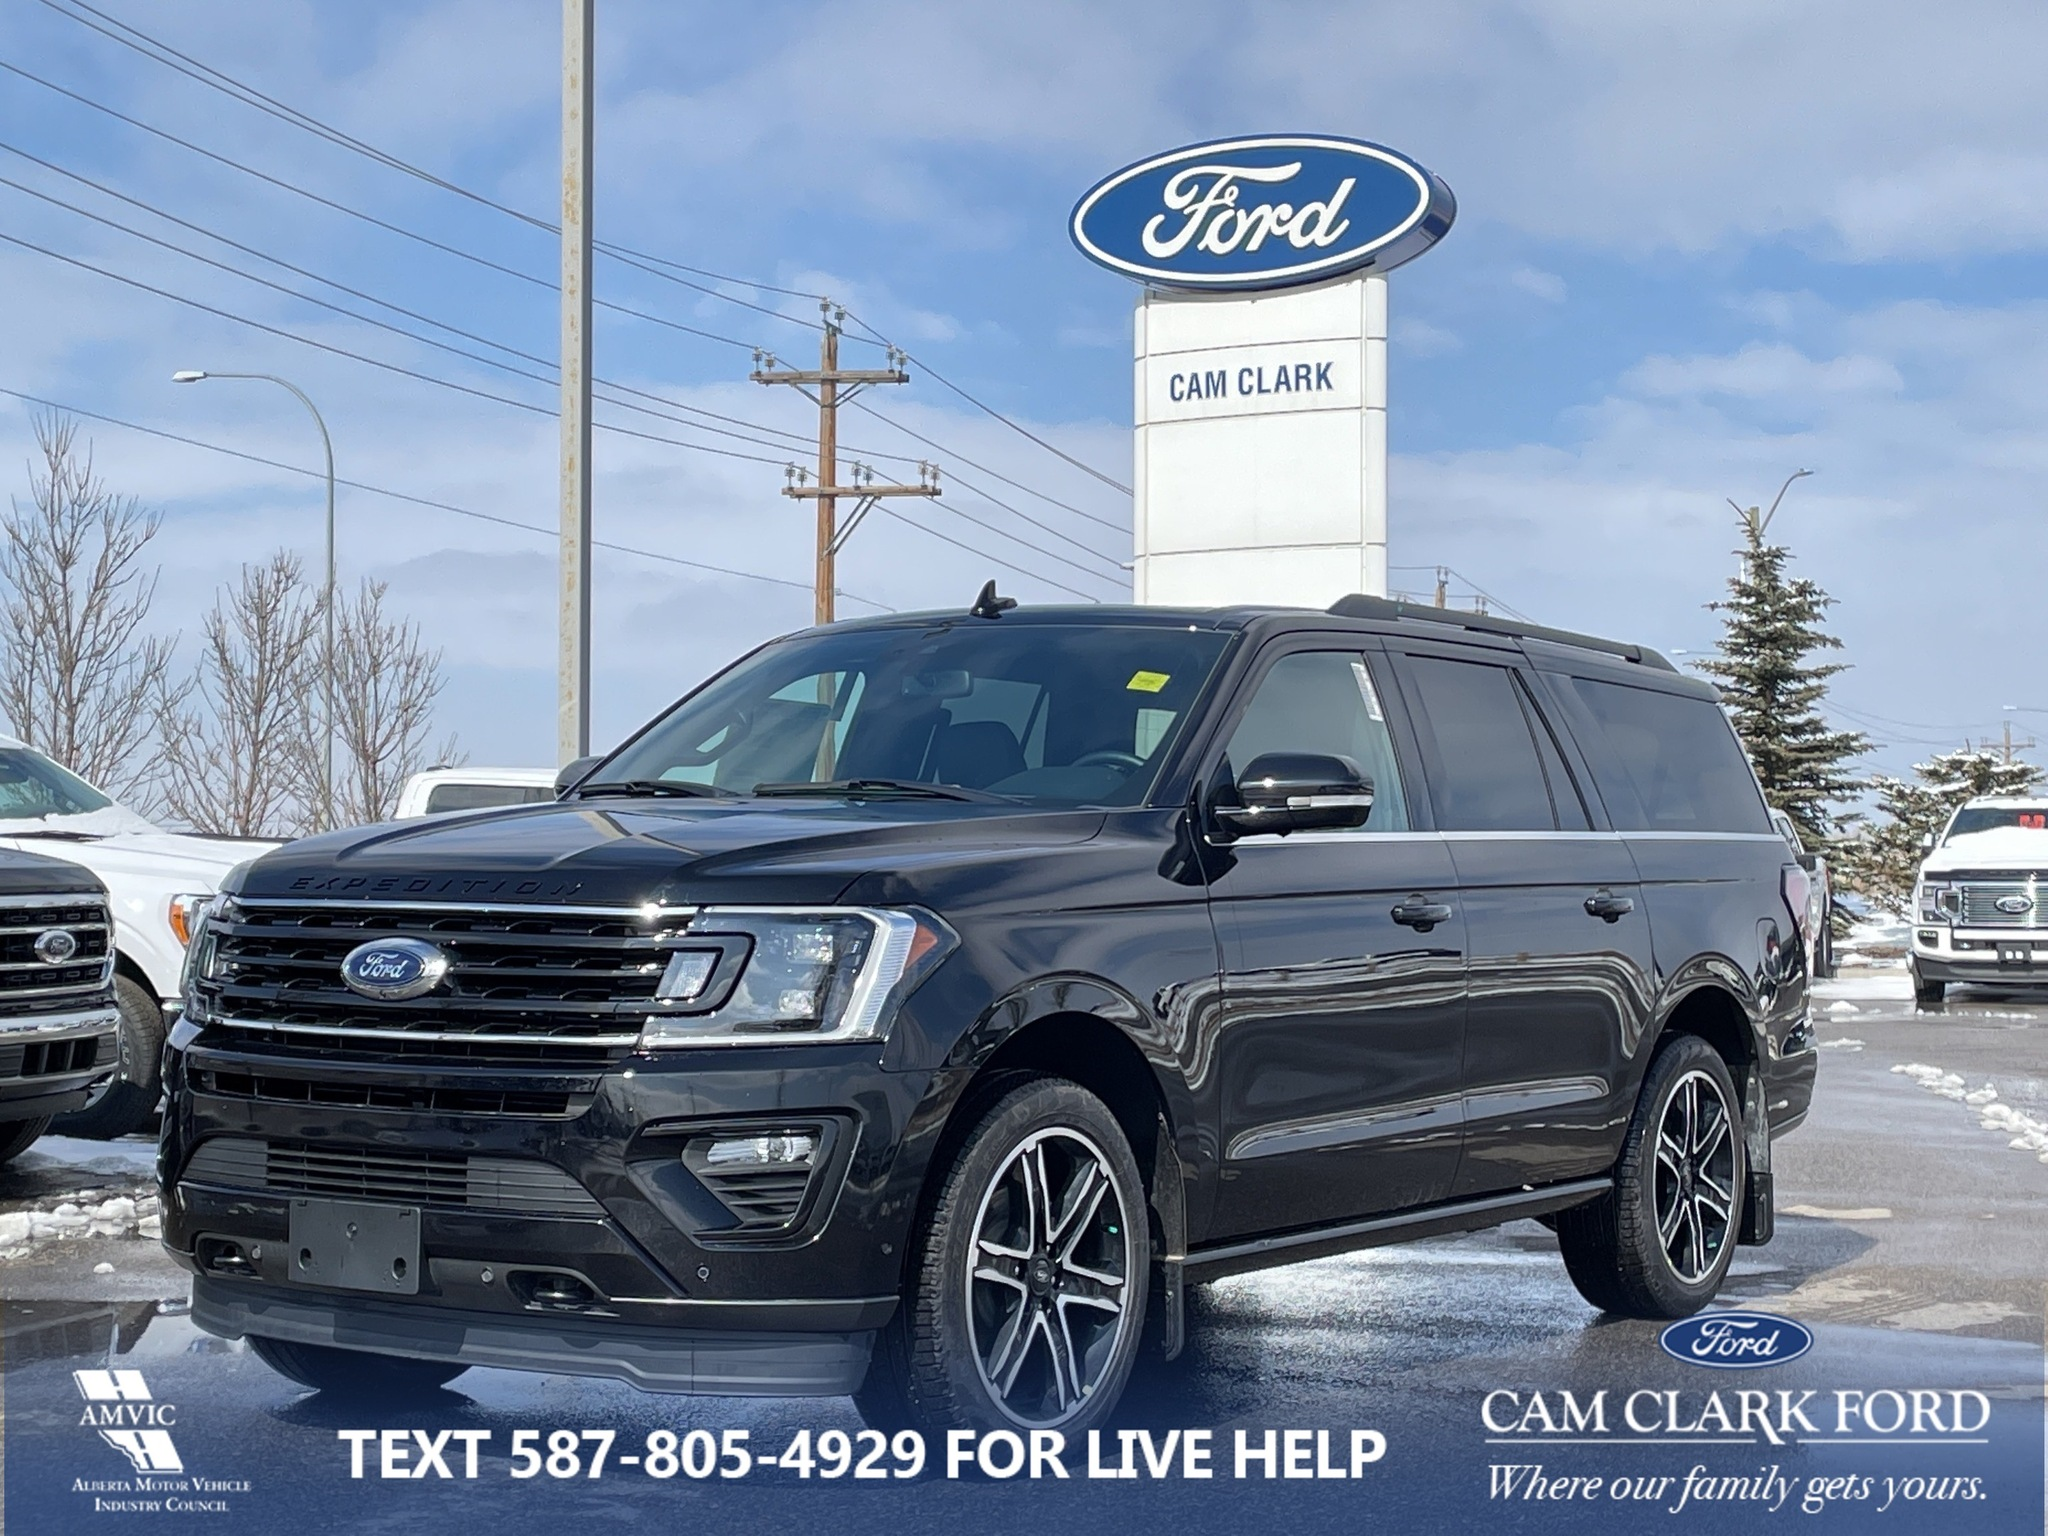 2021 Ford Edge in Airdrie, AB | Cam Clark Ford Airdrie